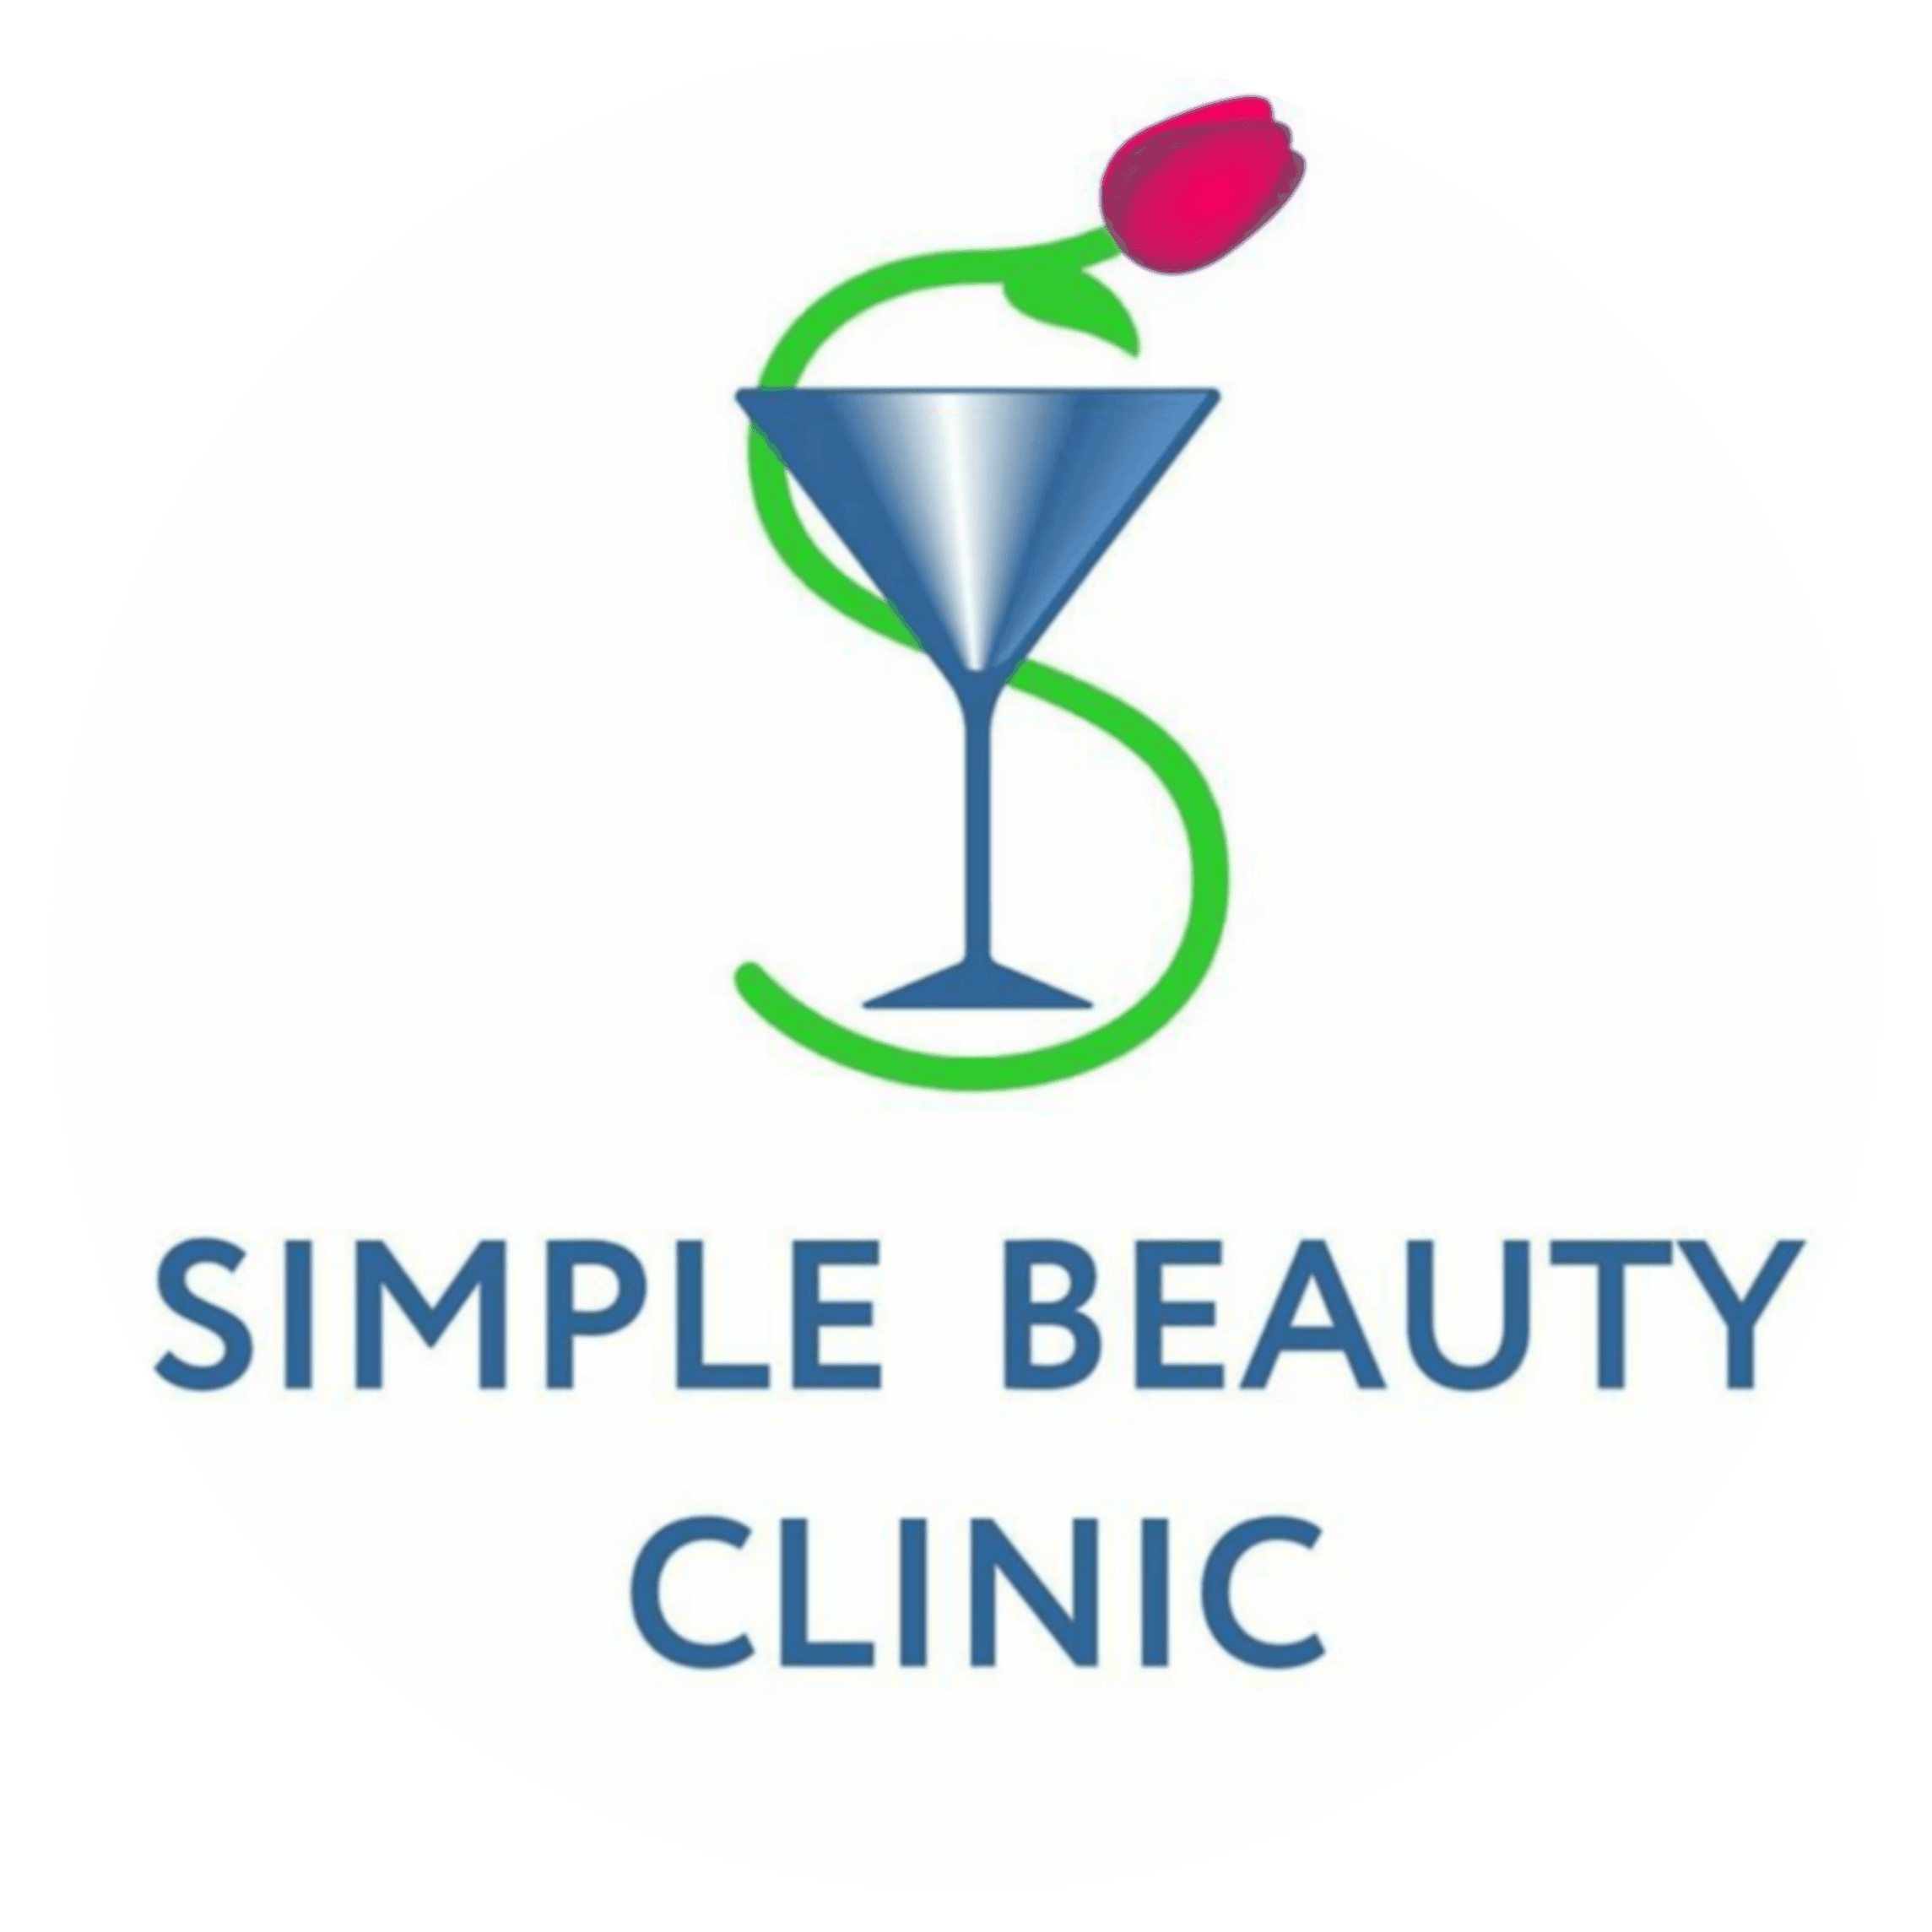 SIMPLE BEAUTY CLINIC